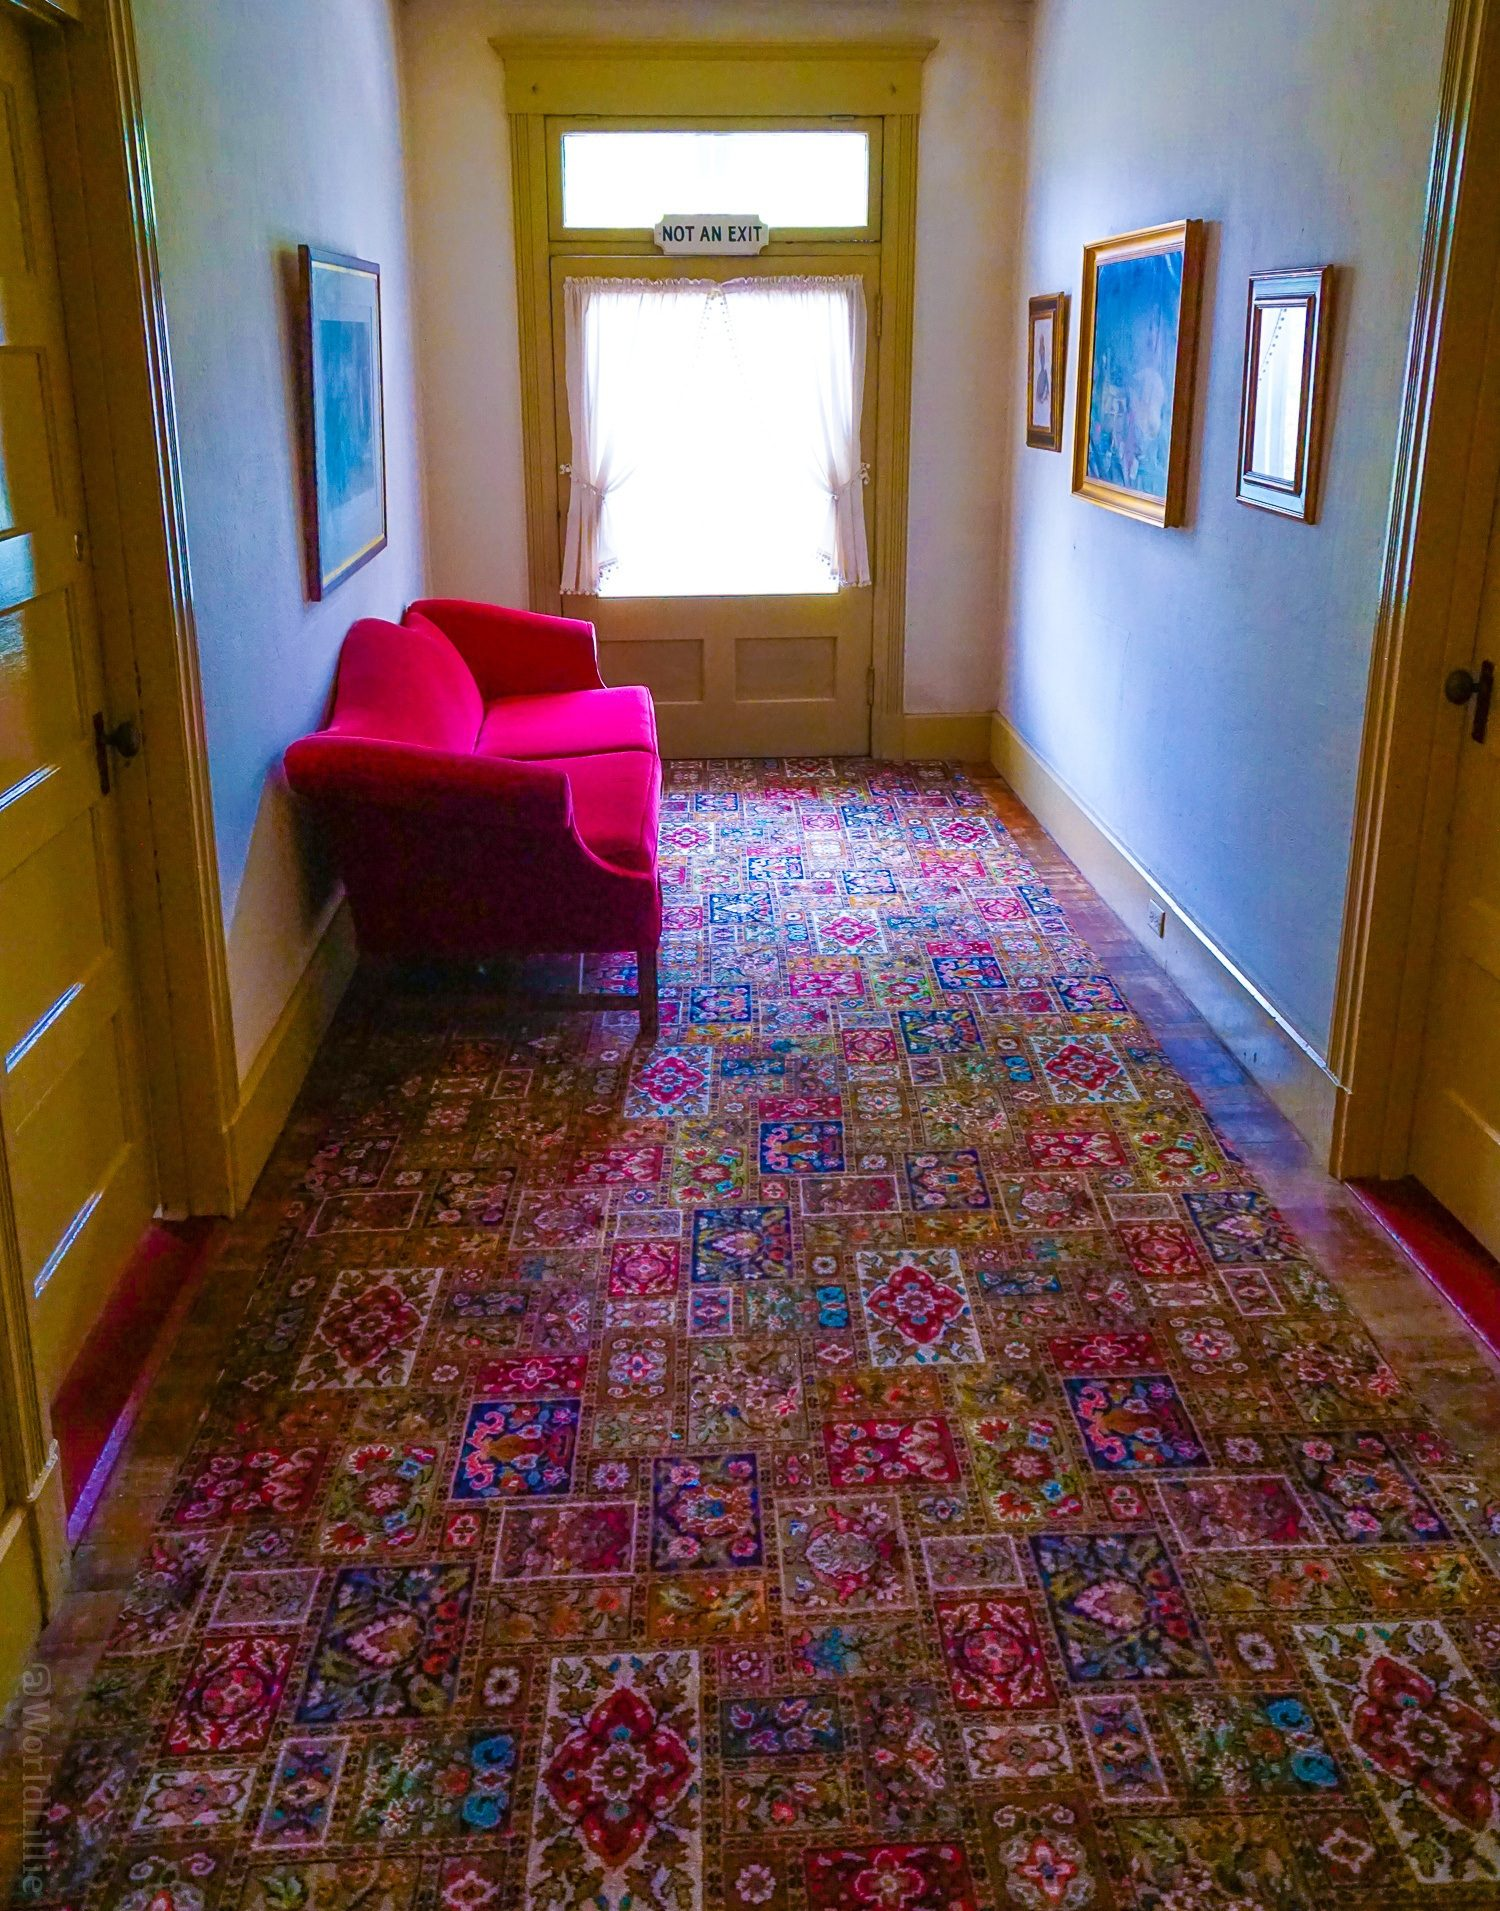 Historic hotel rugs and red sofa at the Red Lion Inn, Stockbridge